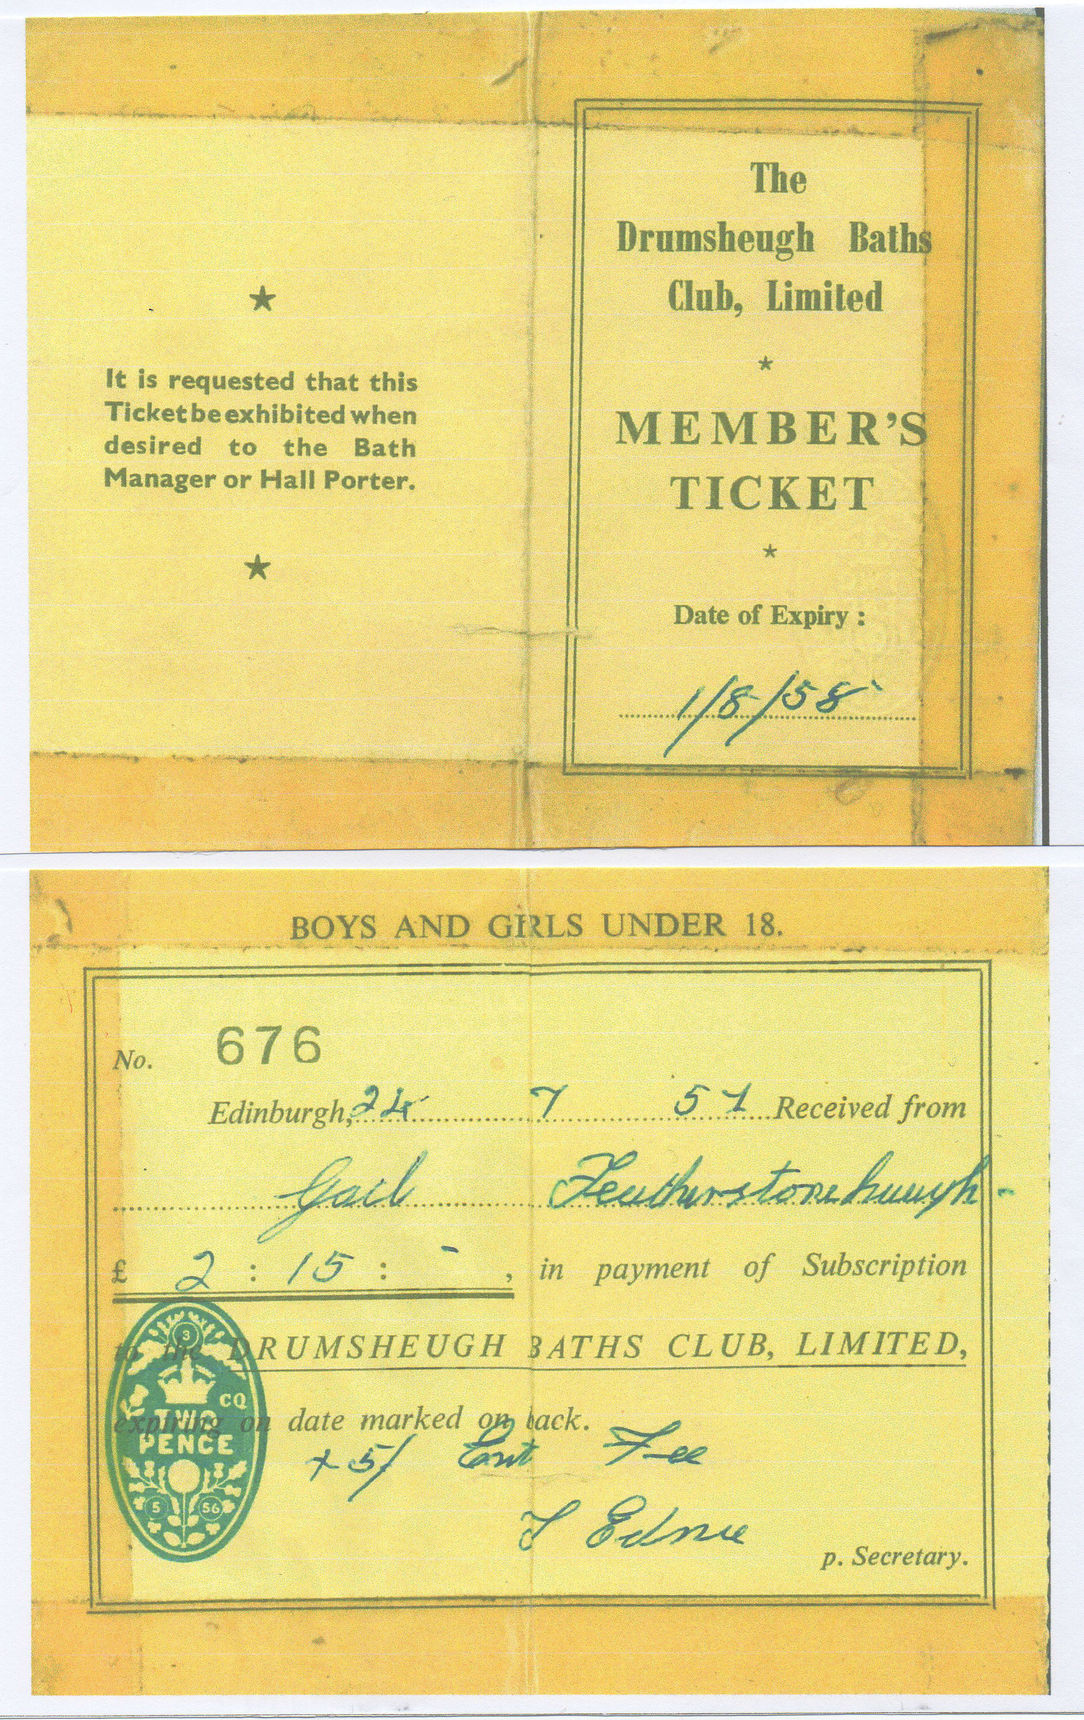 My Dad gave me £2 and 15 shillings for a year's Subscription to Drumsheugh Baths.